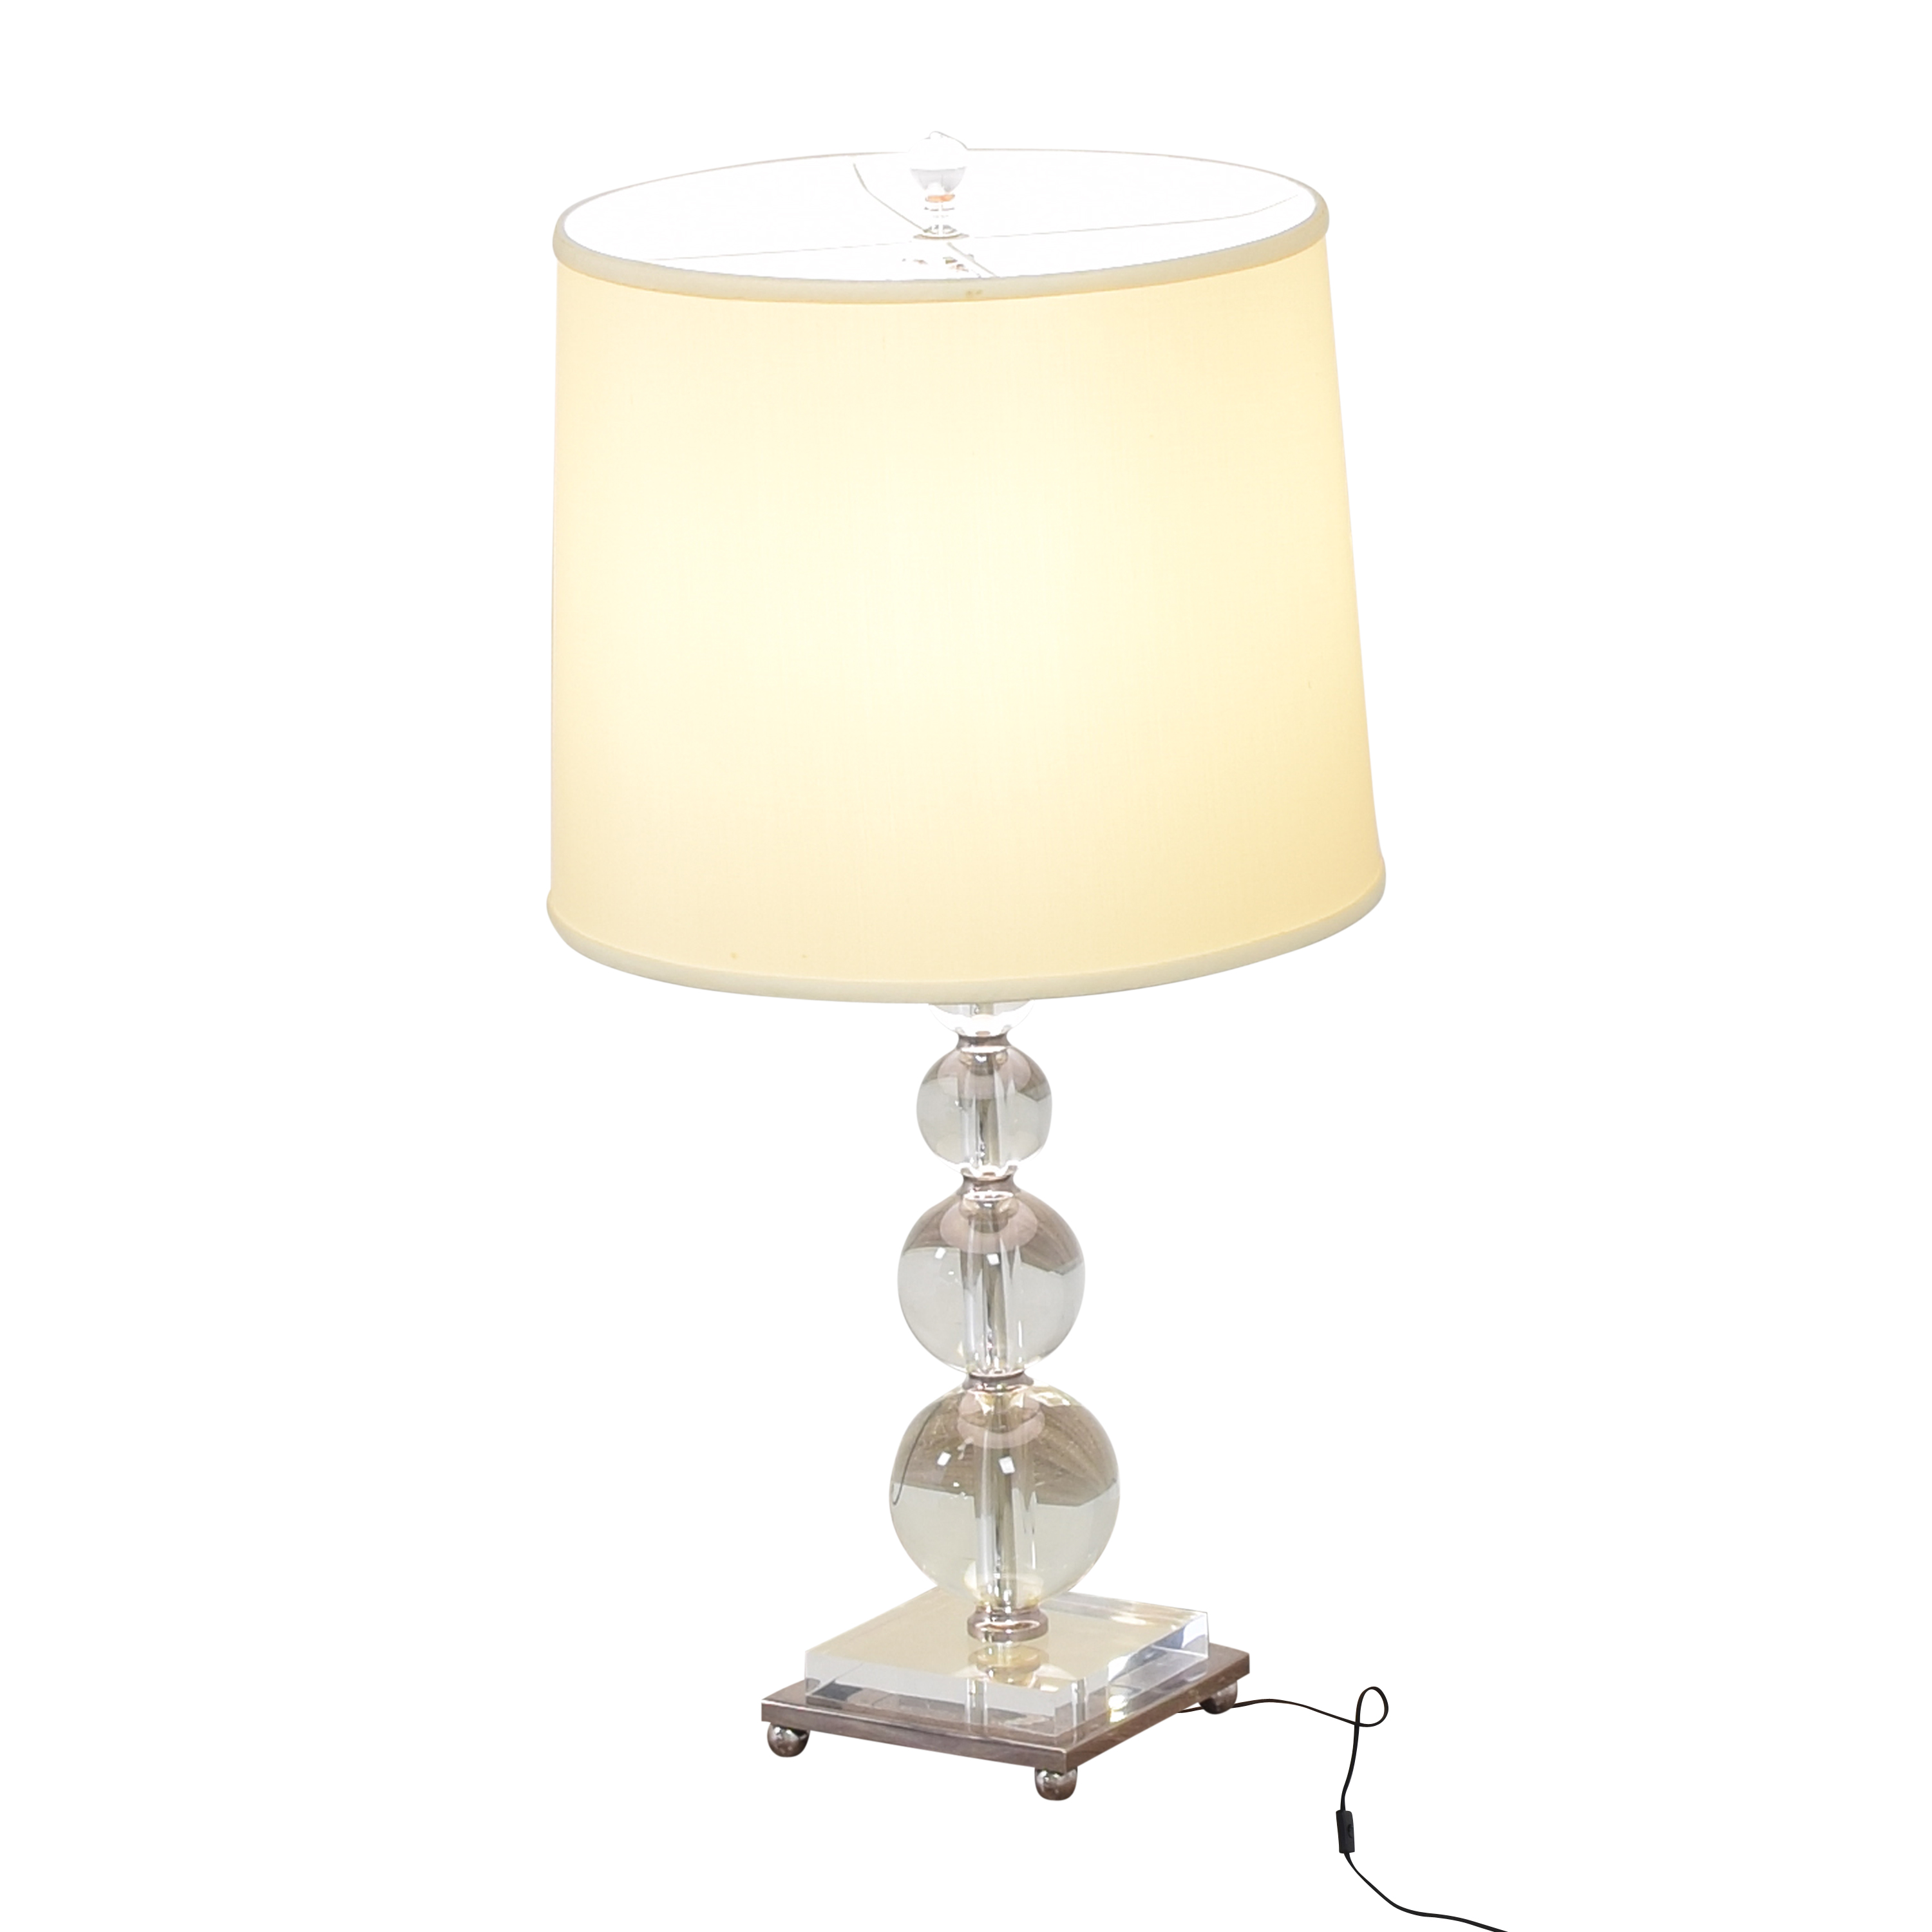 Stacked Ball Table Lamp / Decor